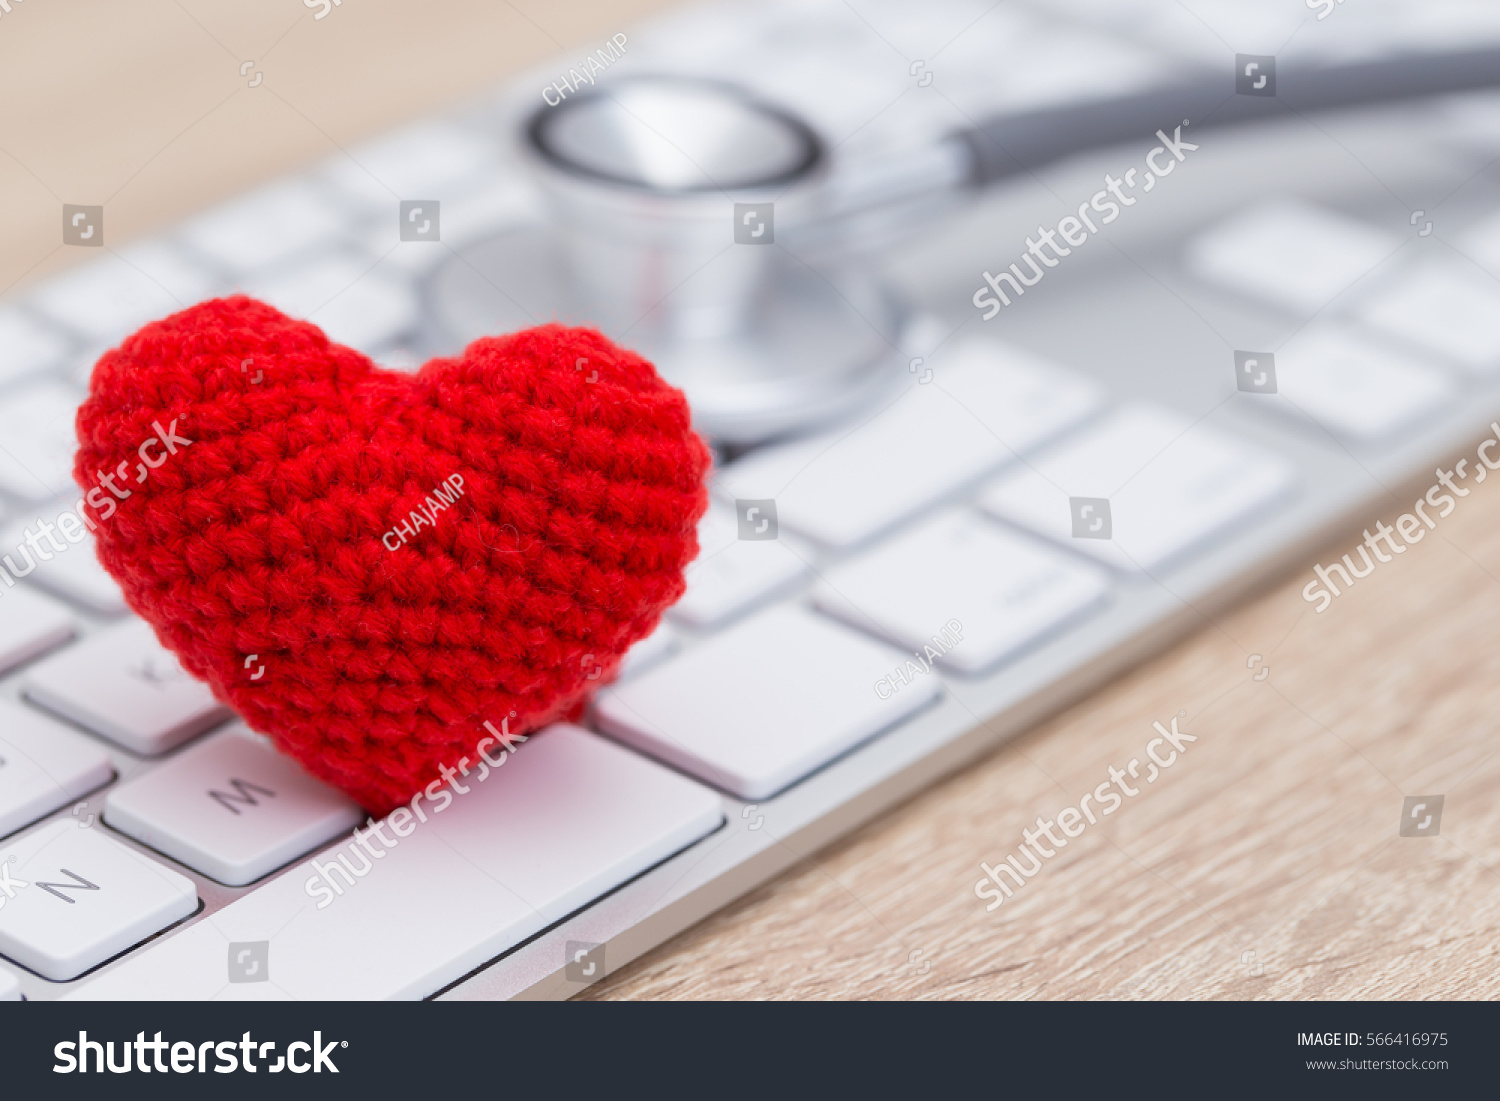 Stethoscope red heart on keyboard stock photo 566416975 shutterstock stethoscope with red heart on keyboard biocorpaavc Images